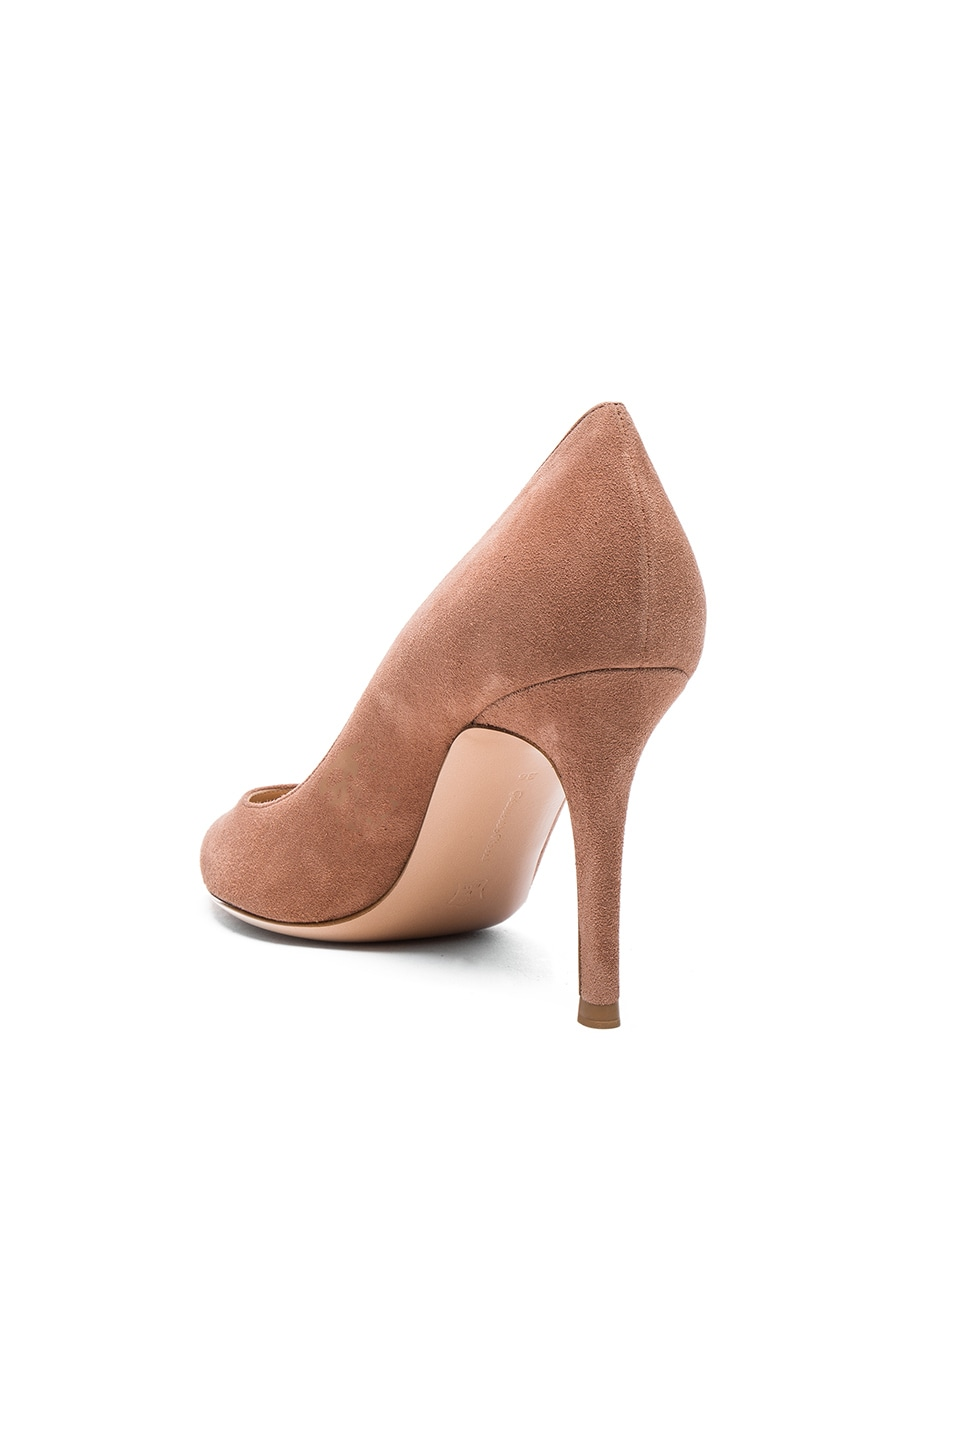 Image 3 of Gianvito Rossi Suede Gianvito Heels in Praline